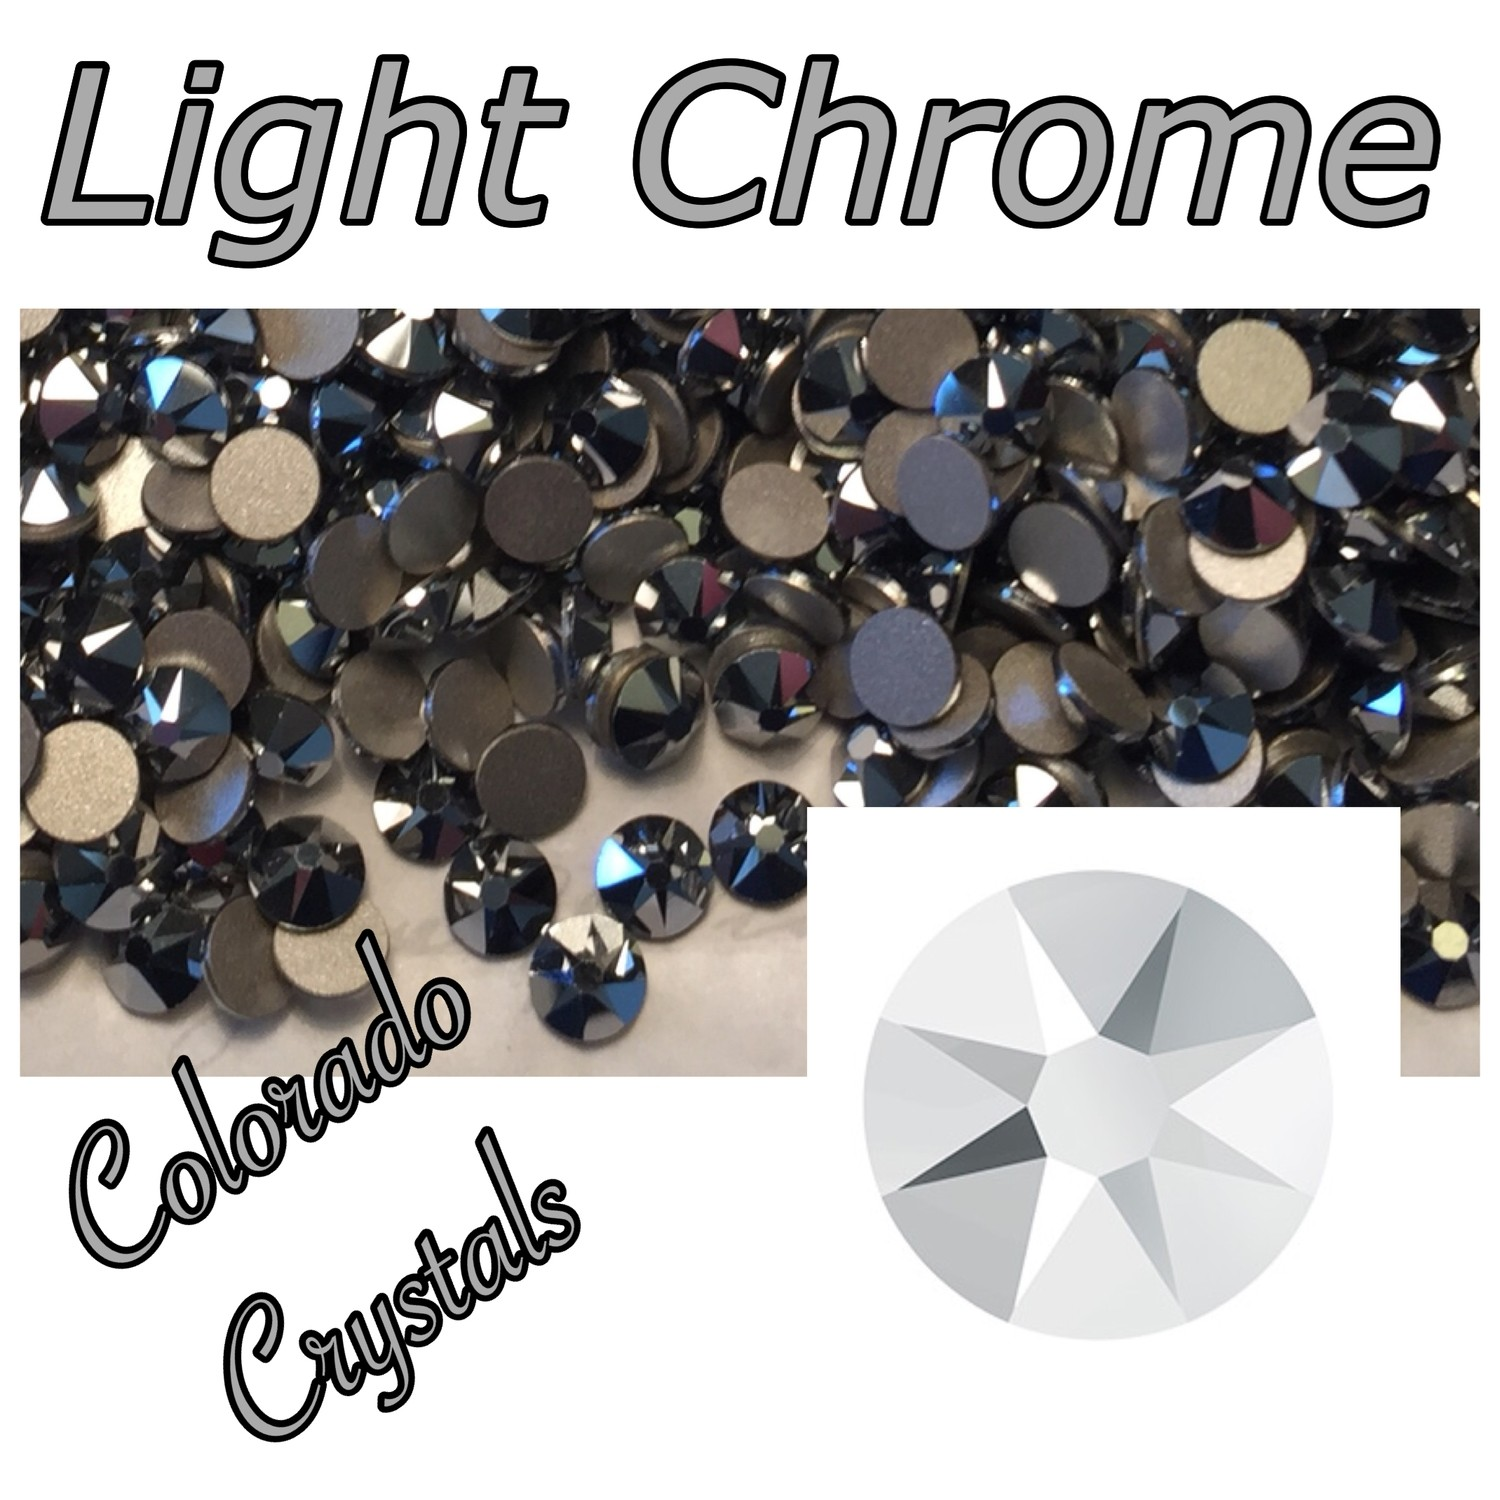 Light Chrome (Crystal) 9ss 2058